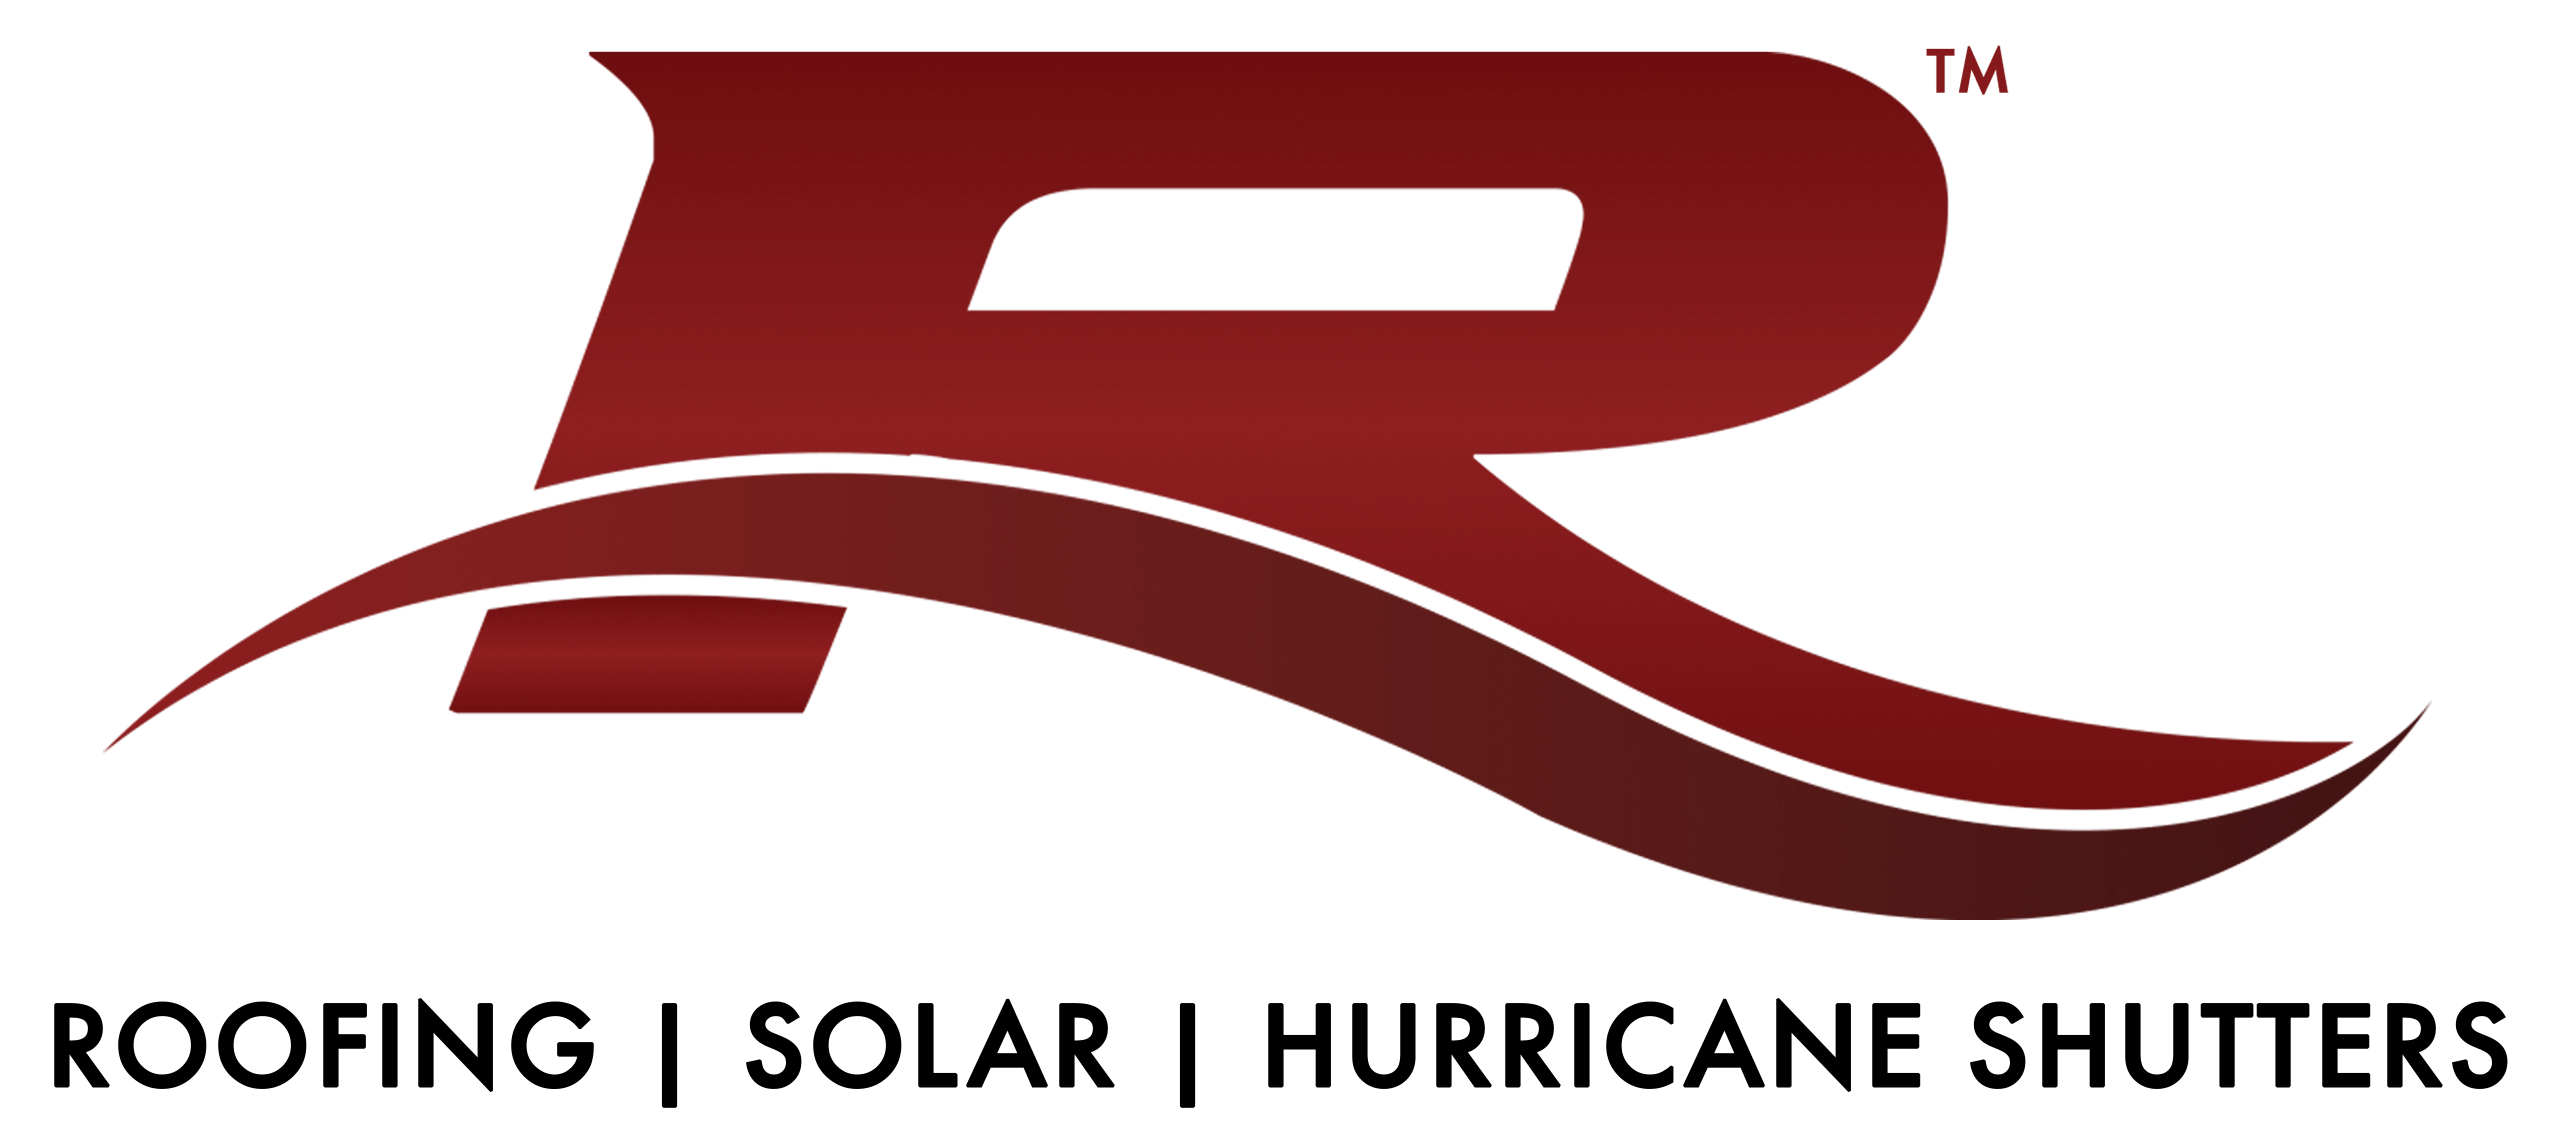 The Jacksonville Roofing Contractor, Reliant Roofing, Solar, & Hurricane Shutters, is Moving Offices